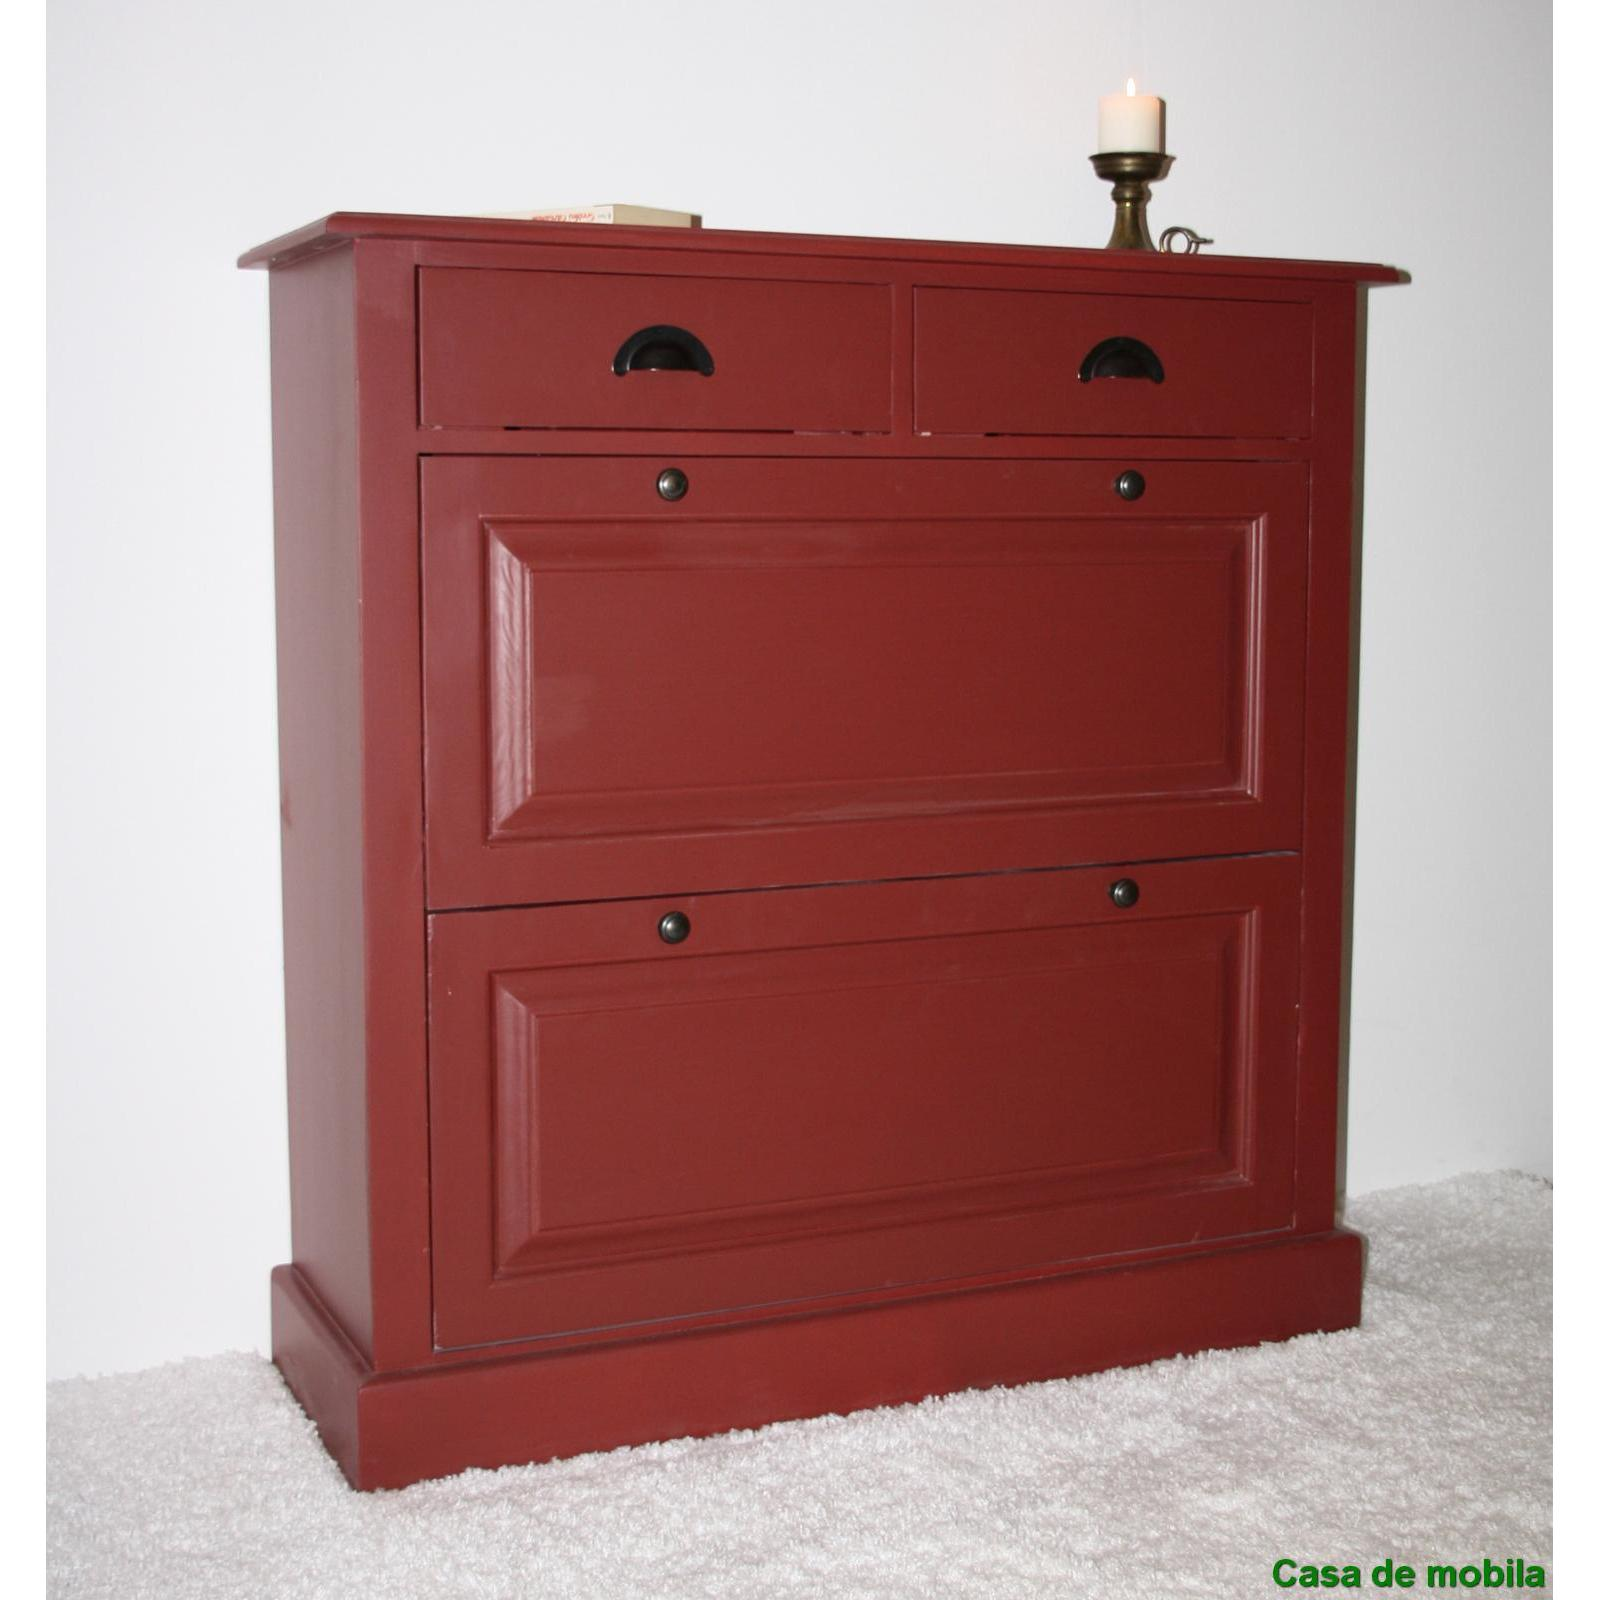 massivholz schuhschrank schuhkipper fichte massiv bordeaux lackiert schuhkommode. Black Bedroom Furniture Sets. Home Design Ideas